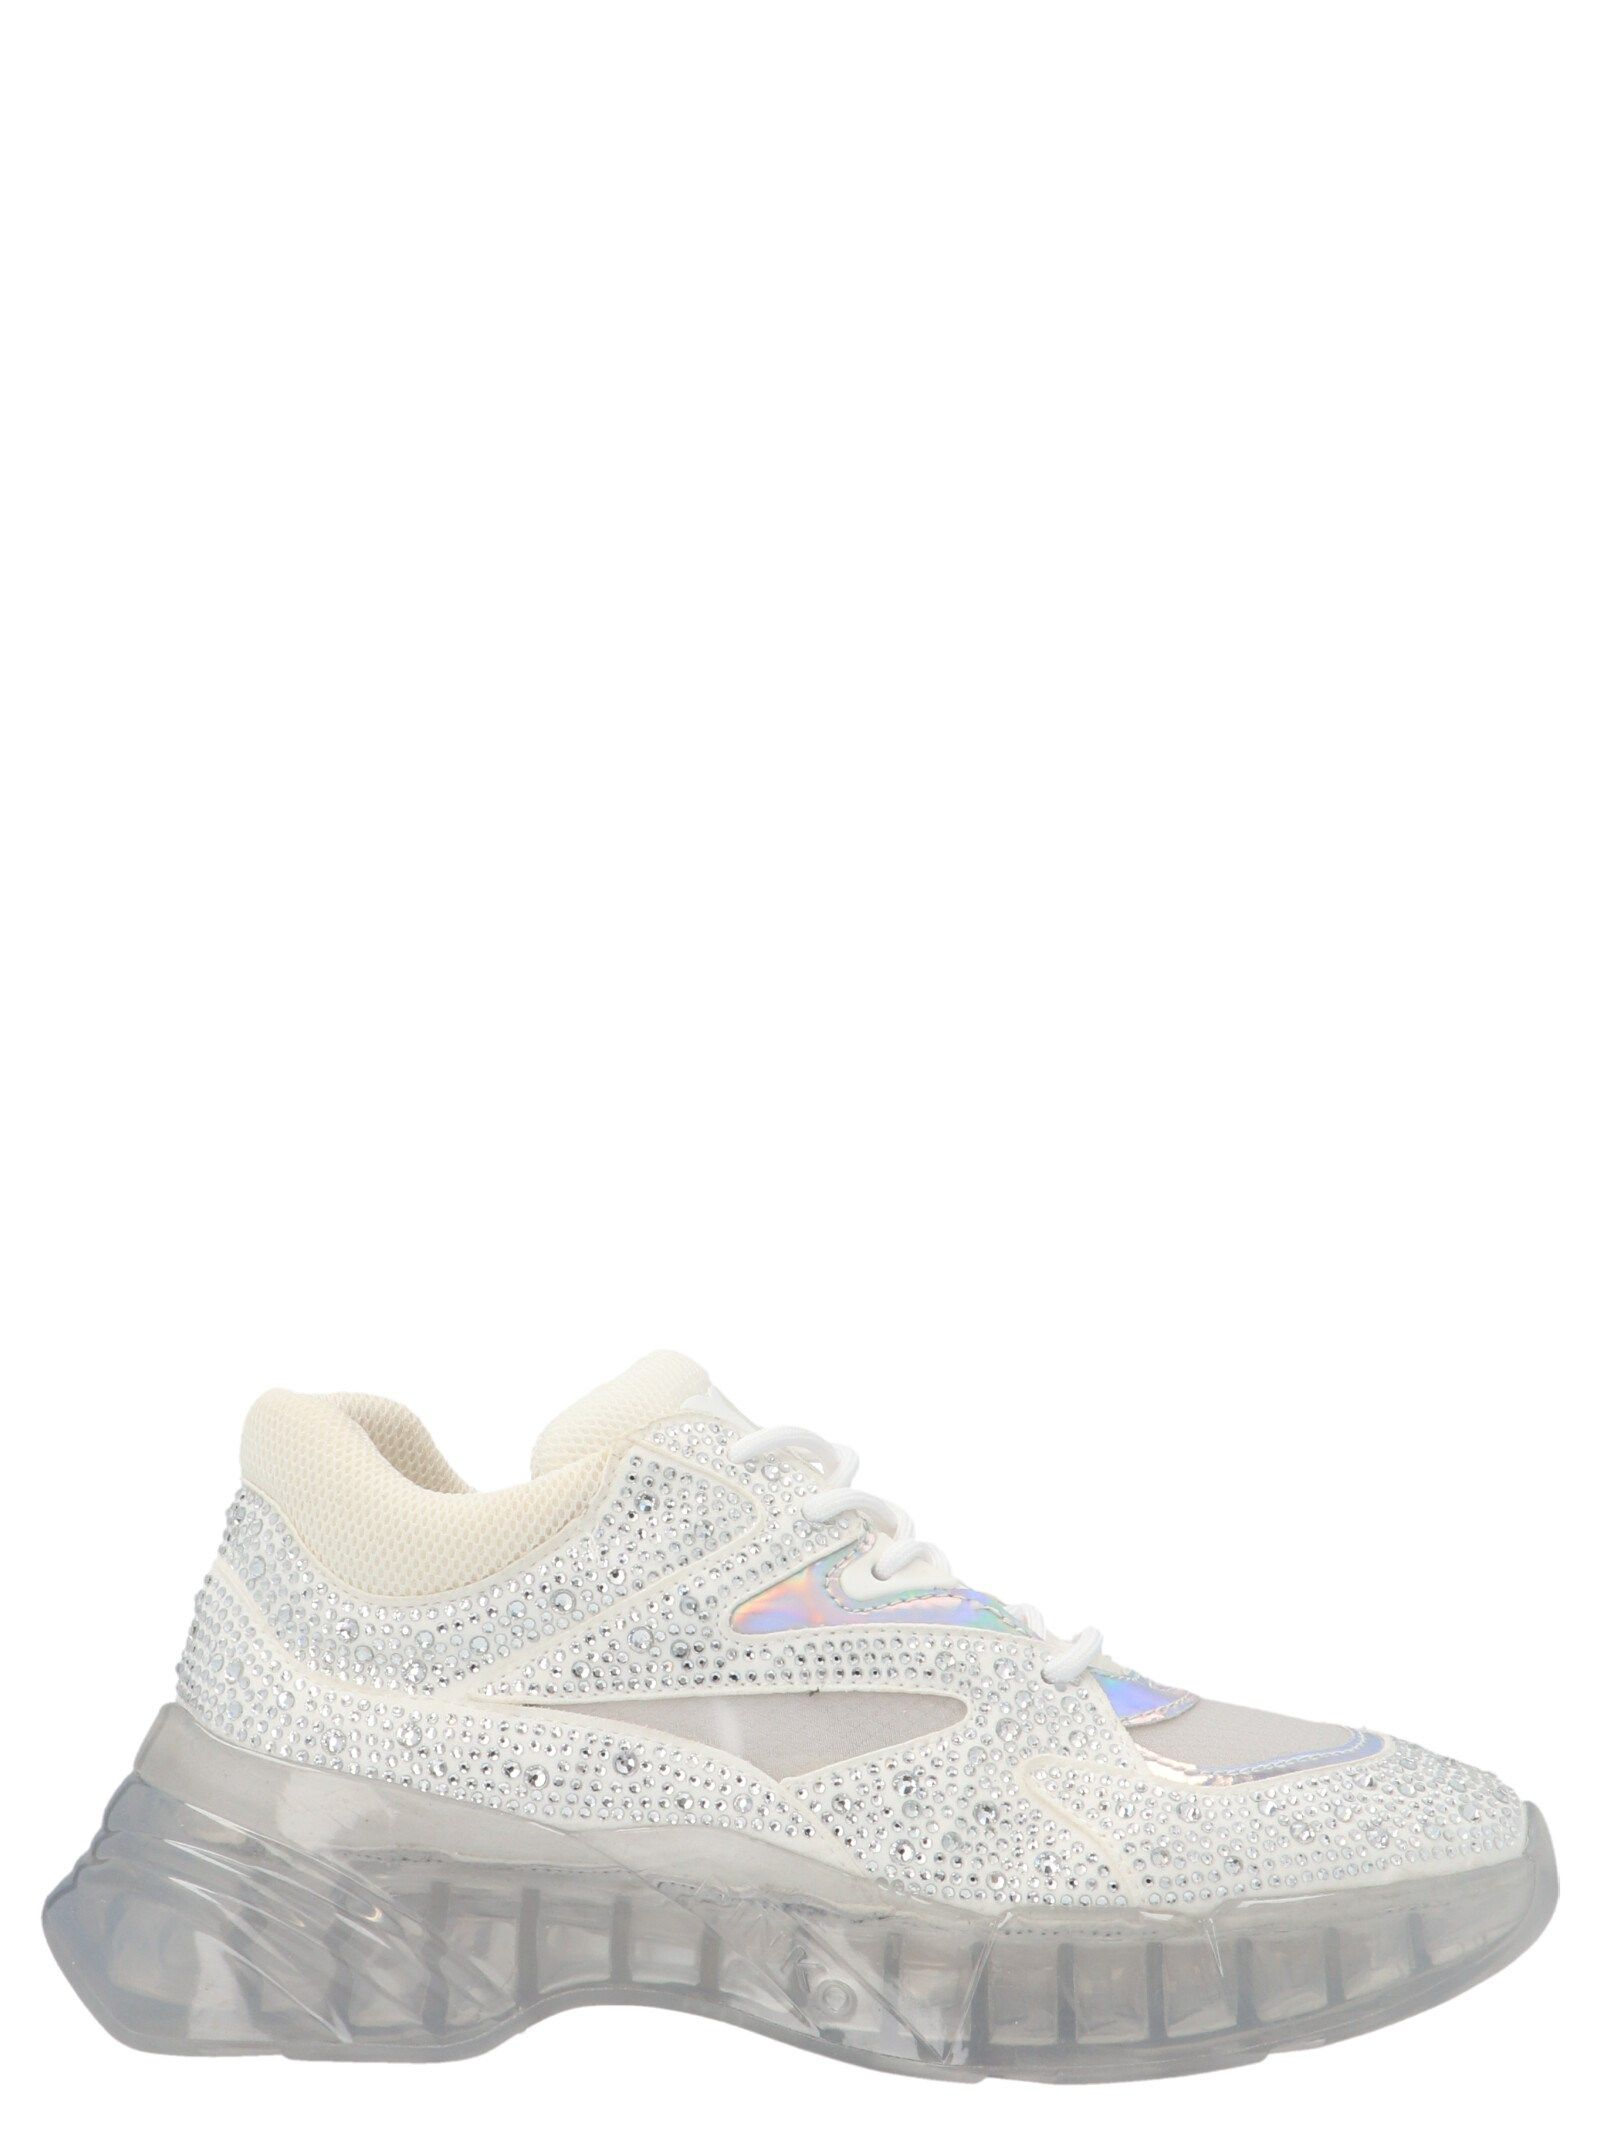 Pinko Sneakers PINKO WOMEN'S 1H20V2Y73HZ04 WHITE OTHER MATERIALS SNEAKERS